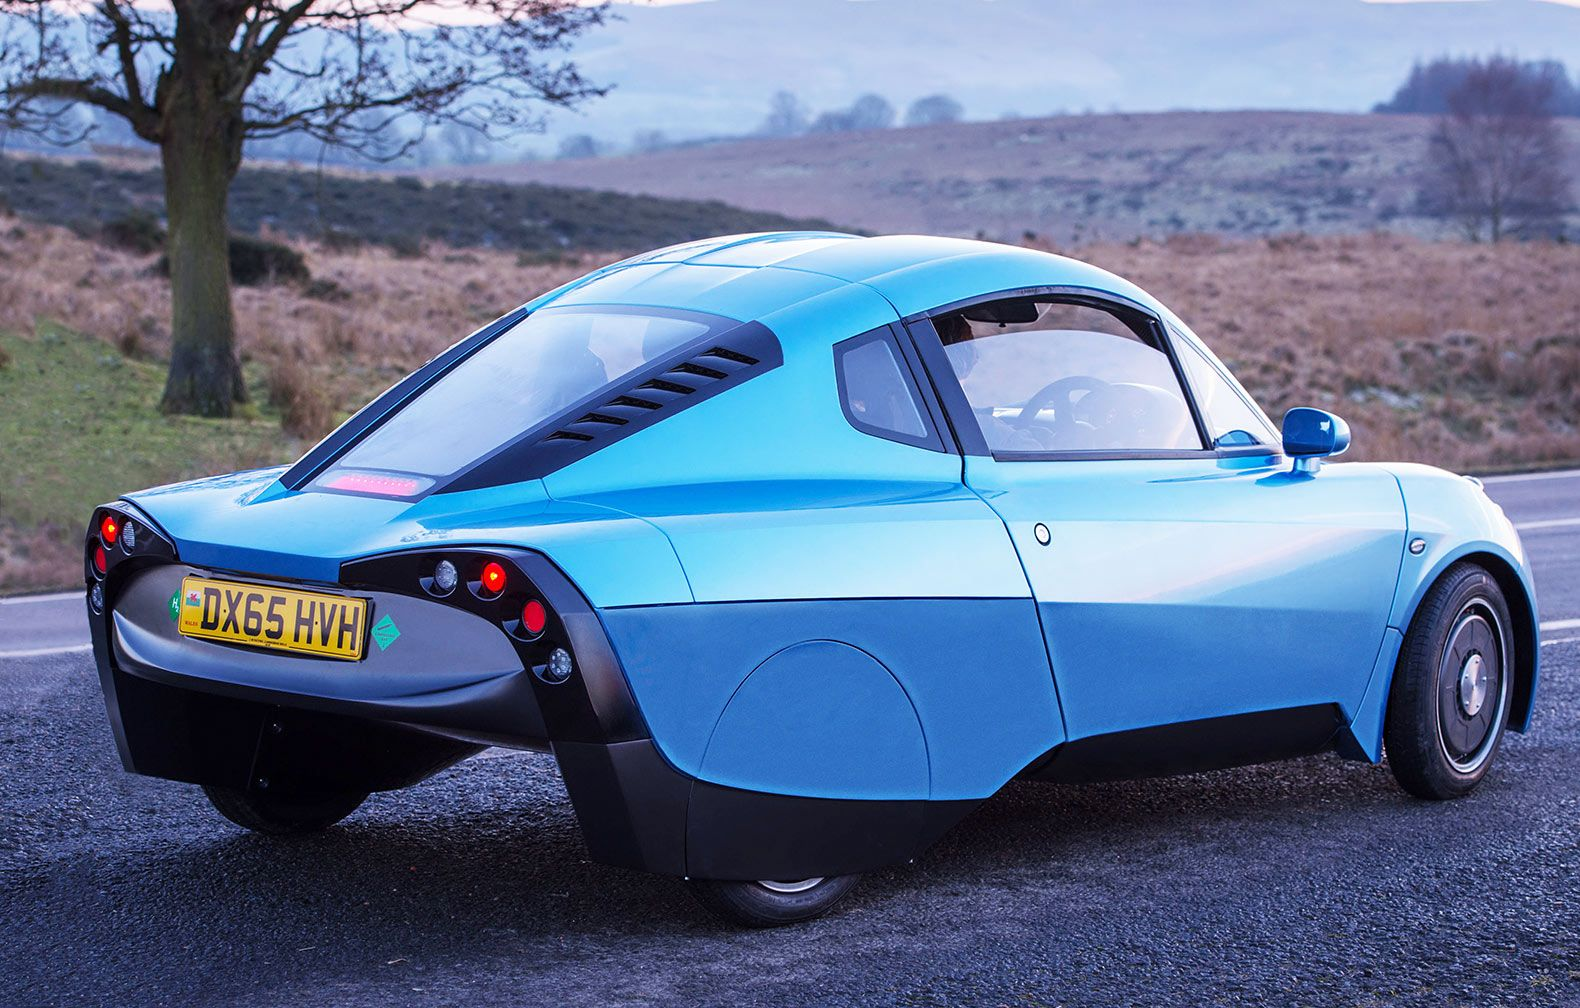 Riversimple launches a 250 mpg hydrogenpowered car